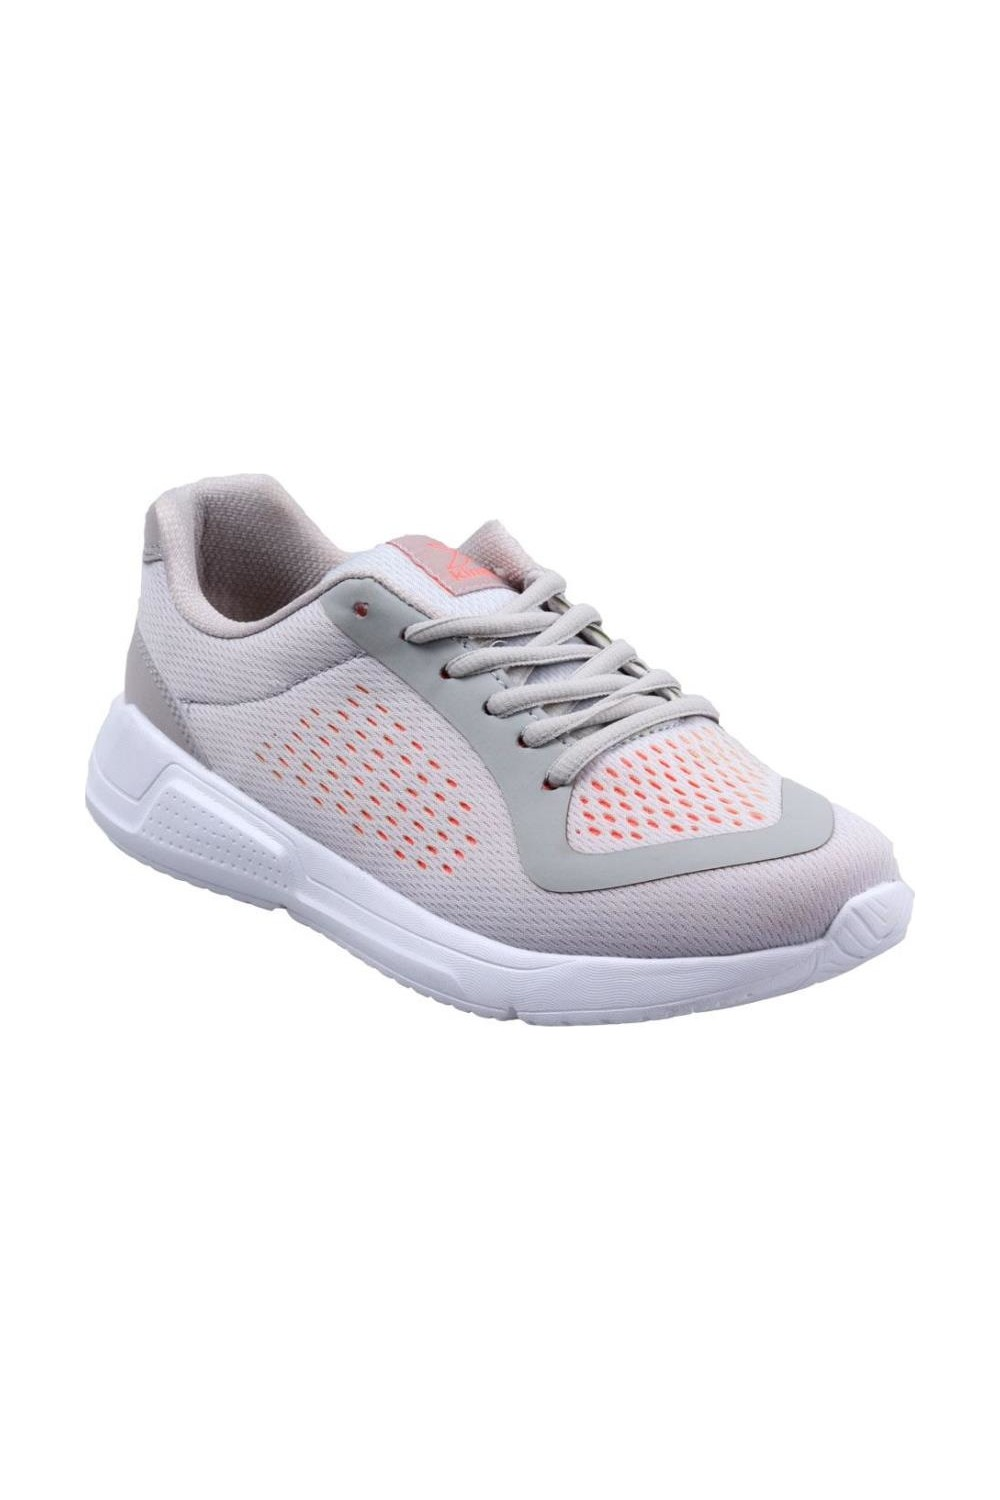 Kinetix Unisex Sport Shoes